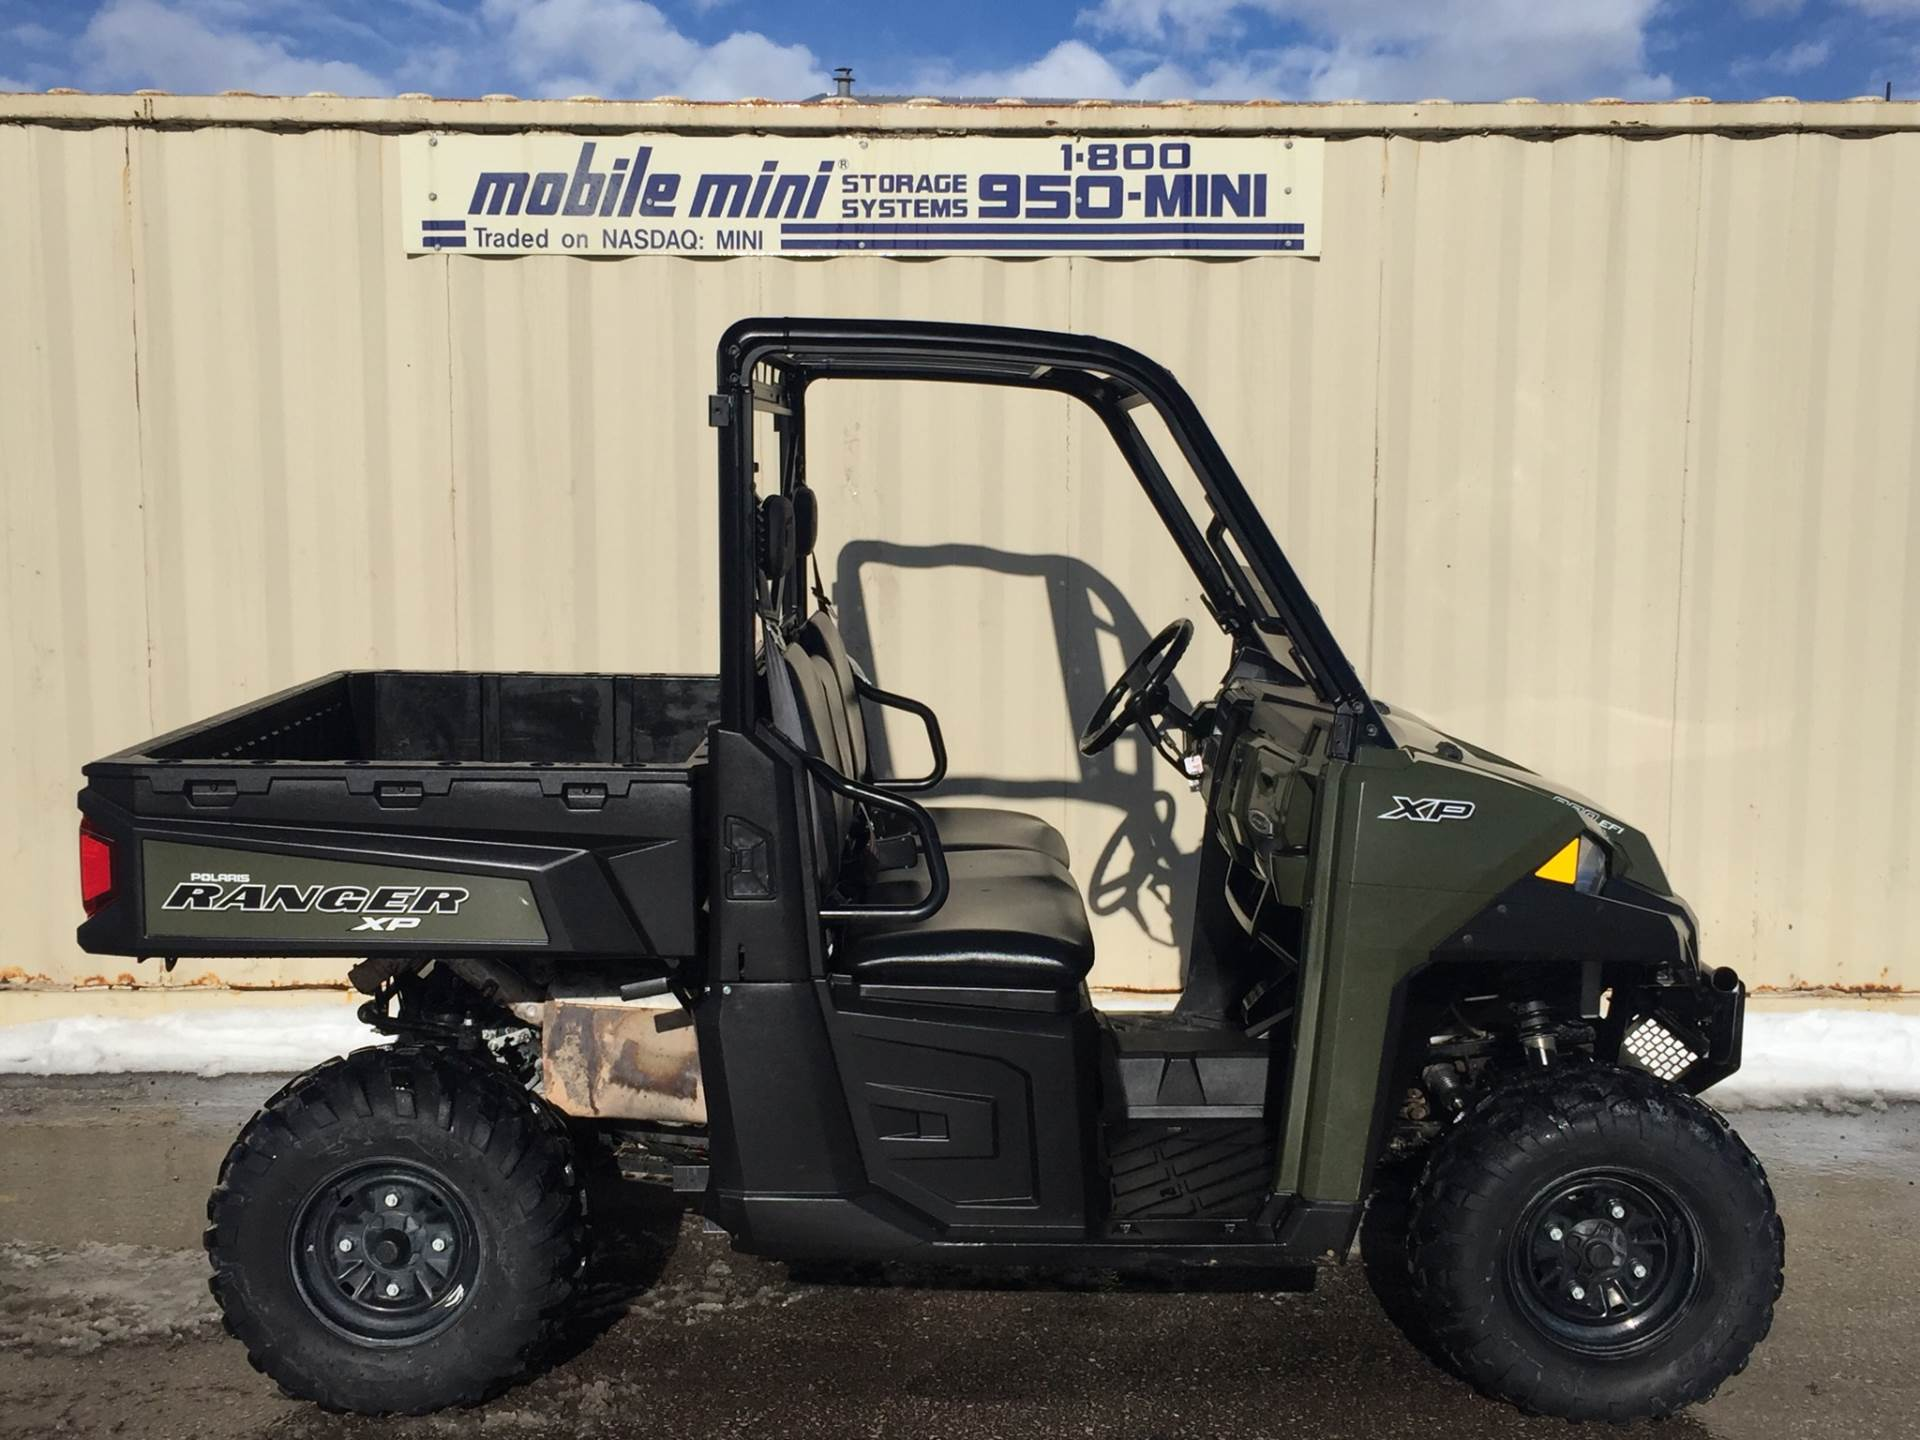 2013 Polaris Ranger XP® 900 in Rapid City, South Dakota